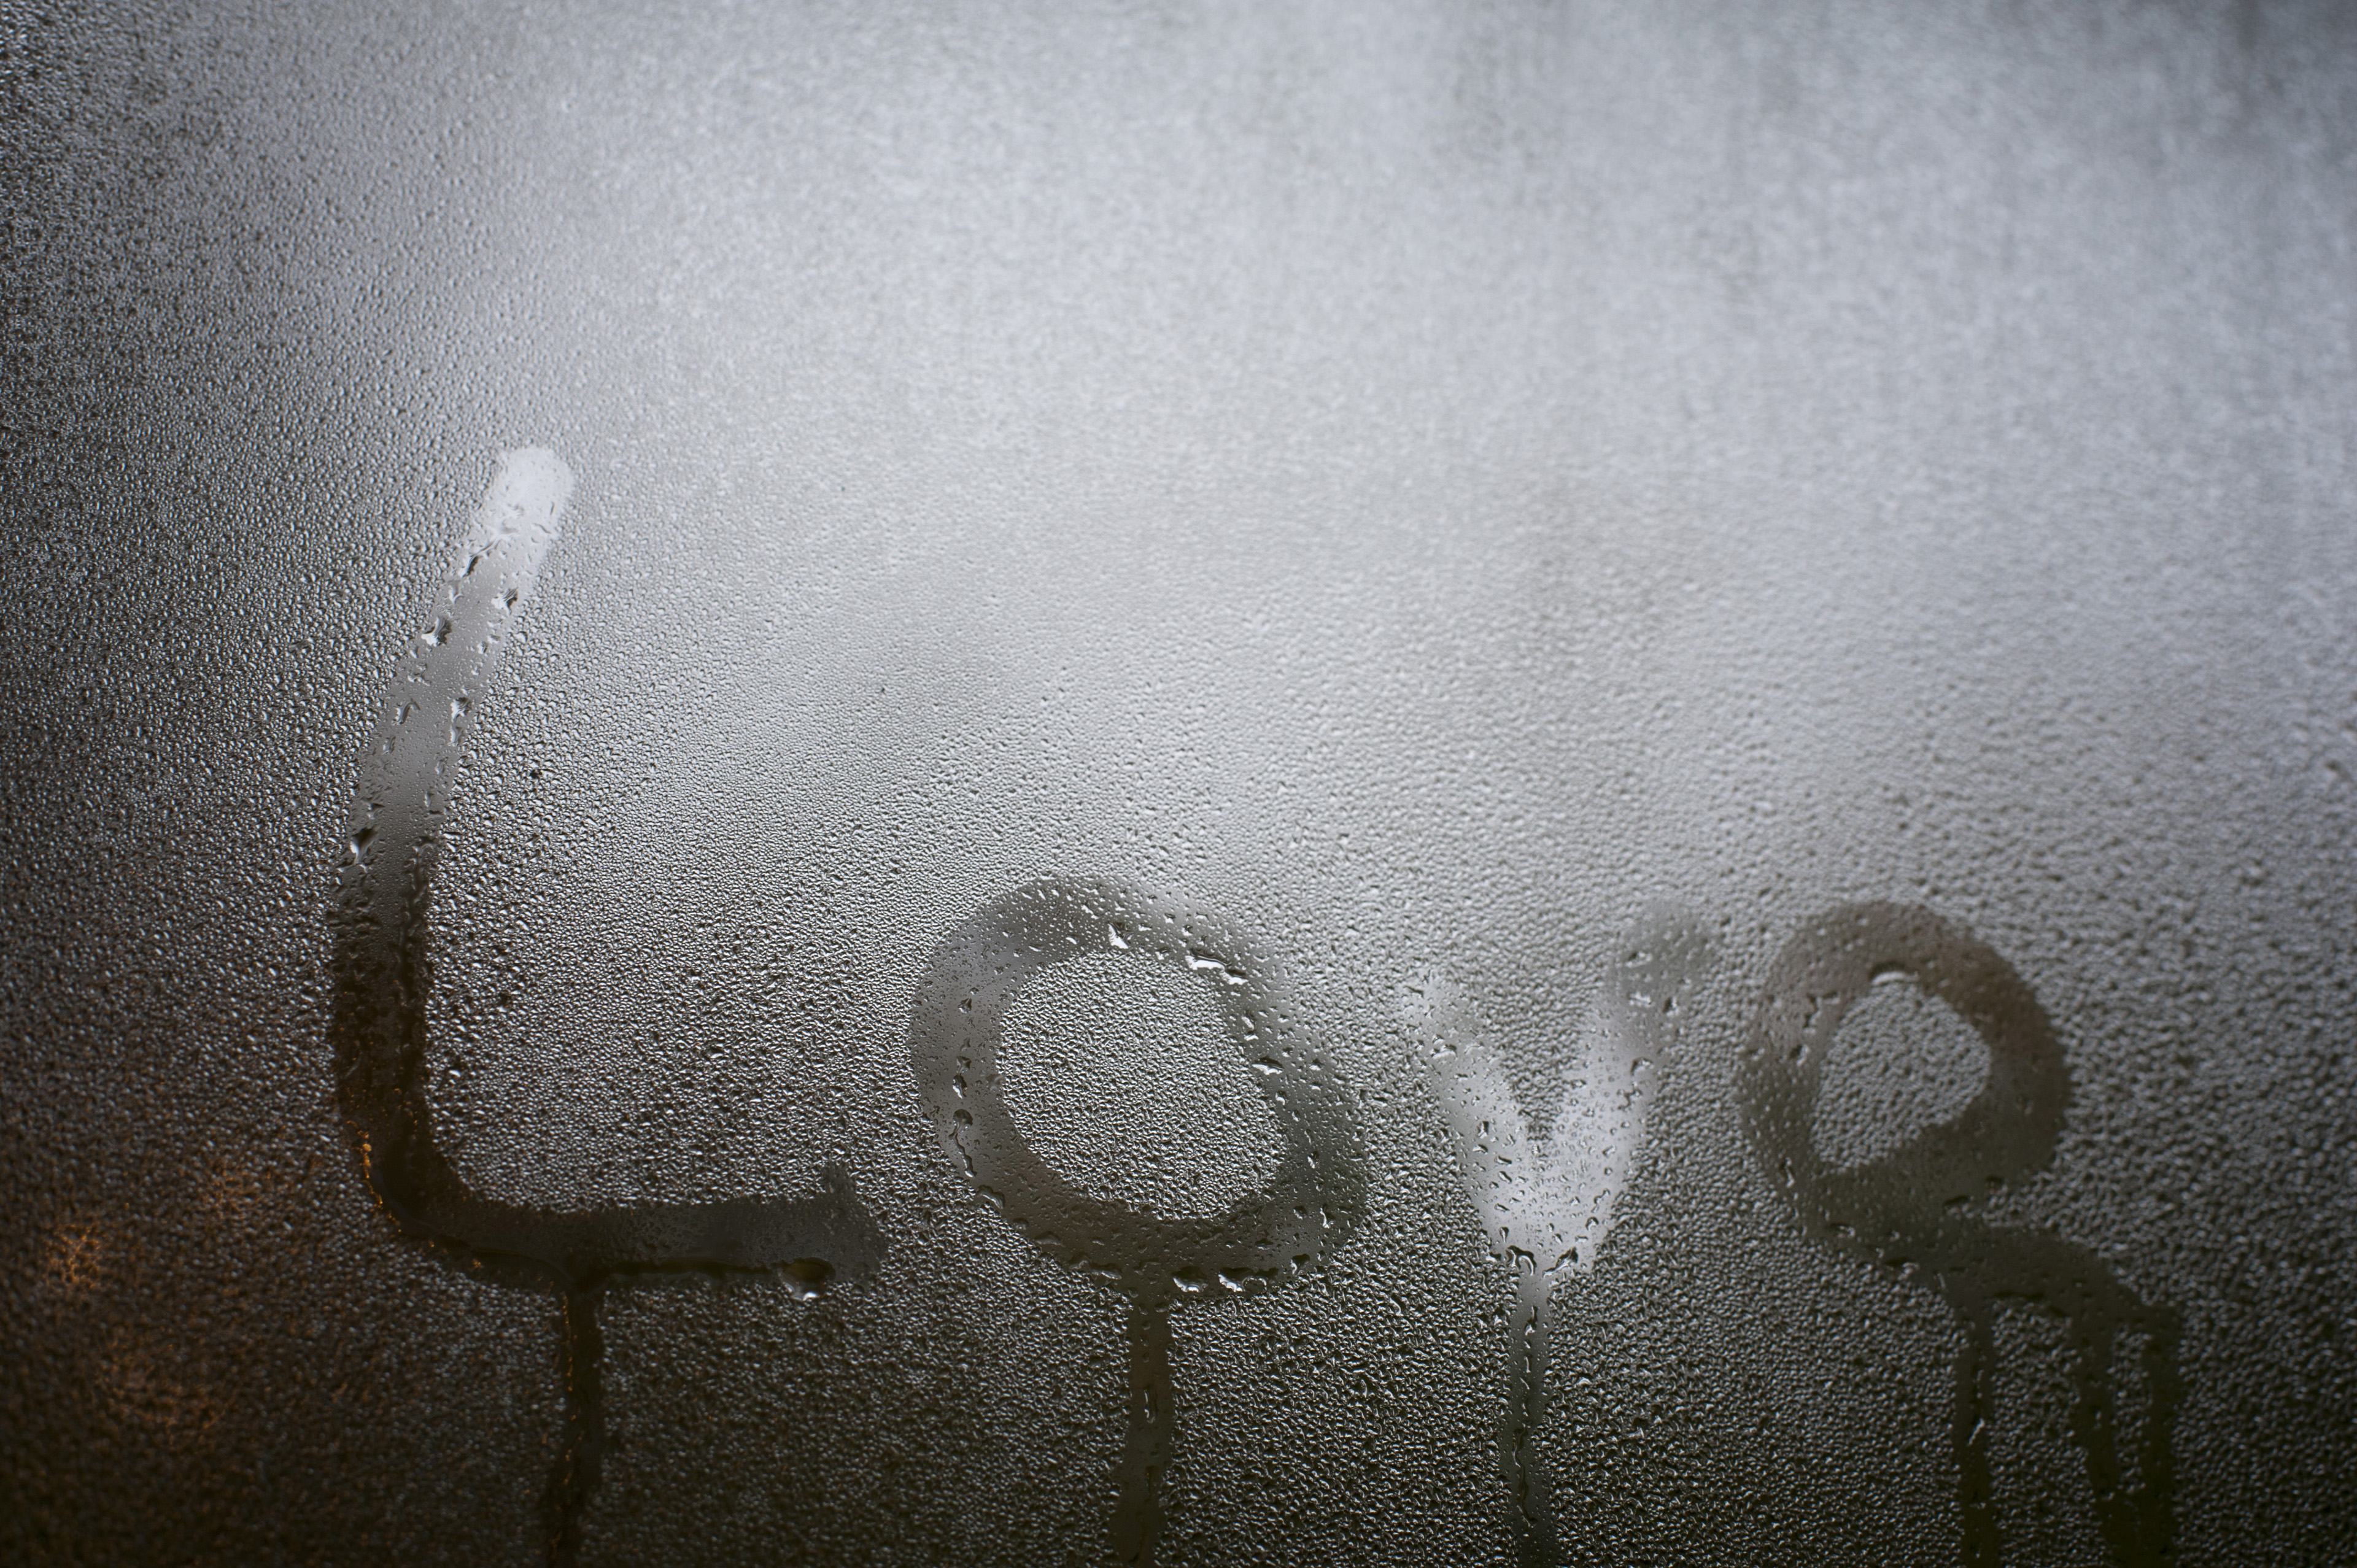 Close up Love Texts on Misty Glass Window for Backgrounds, Emphasizing Copy Space.